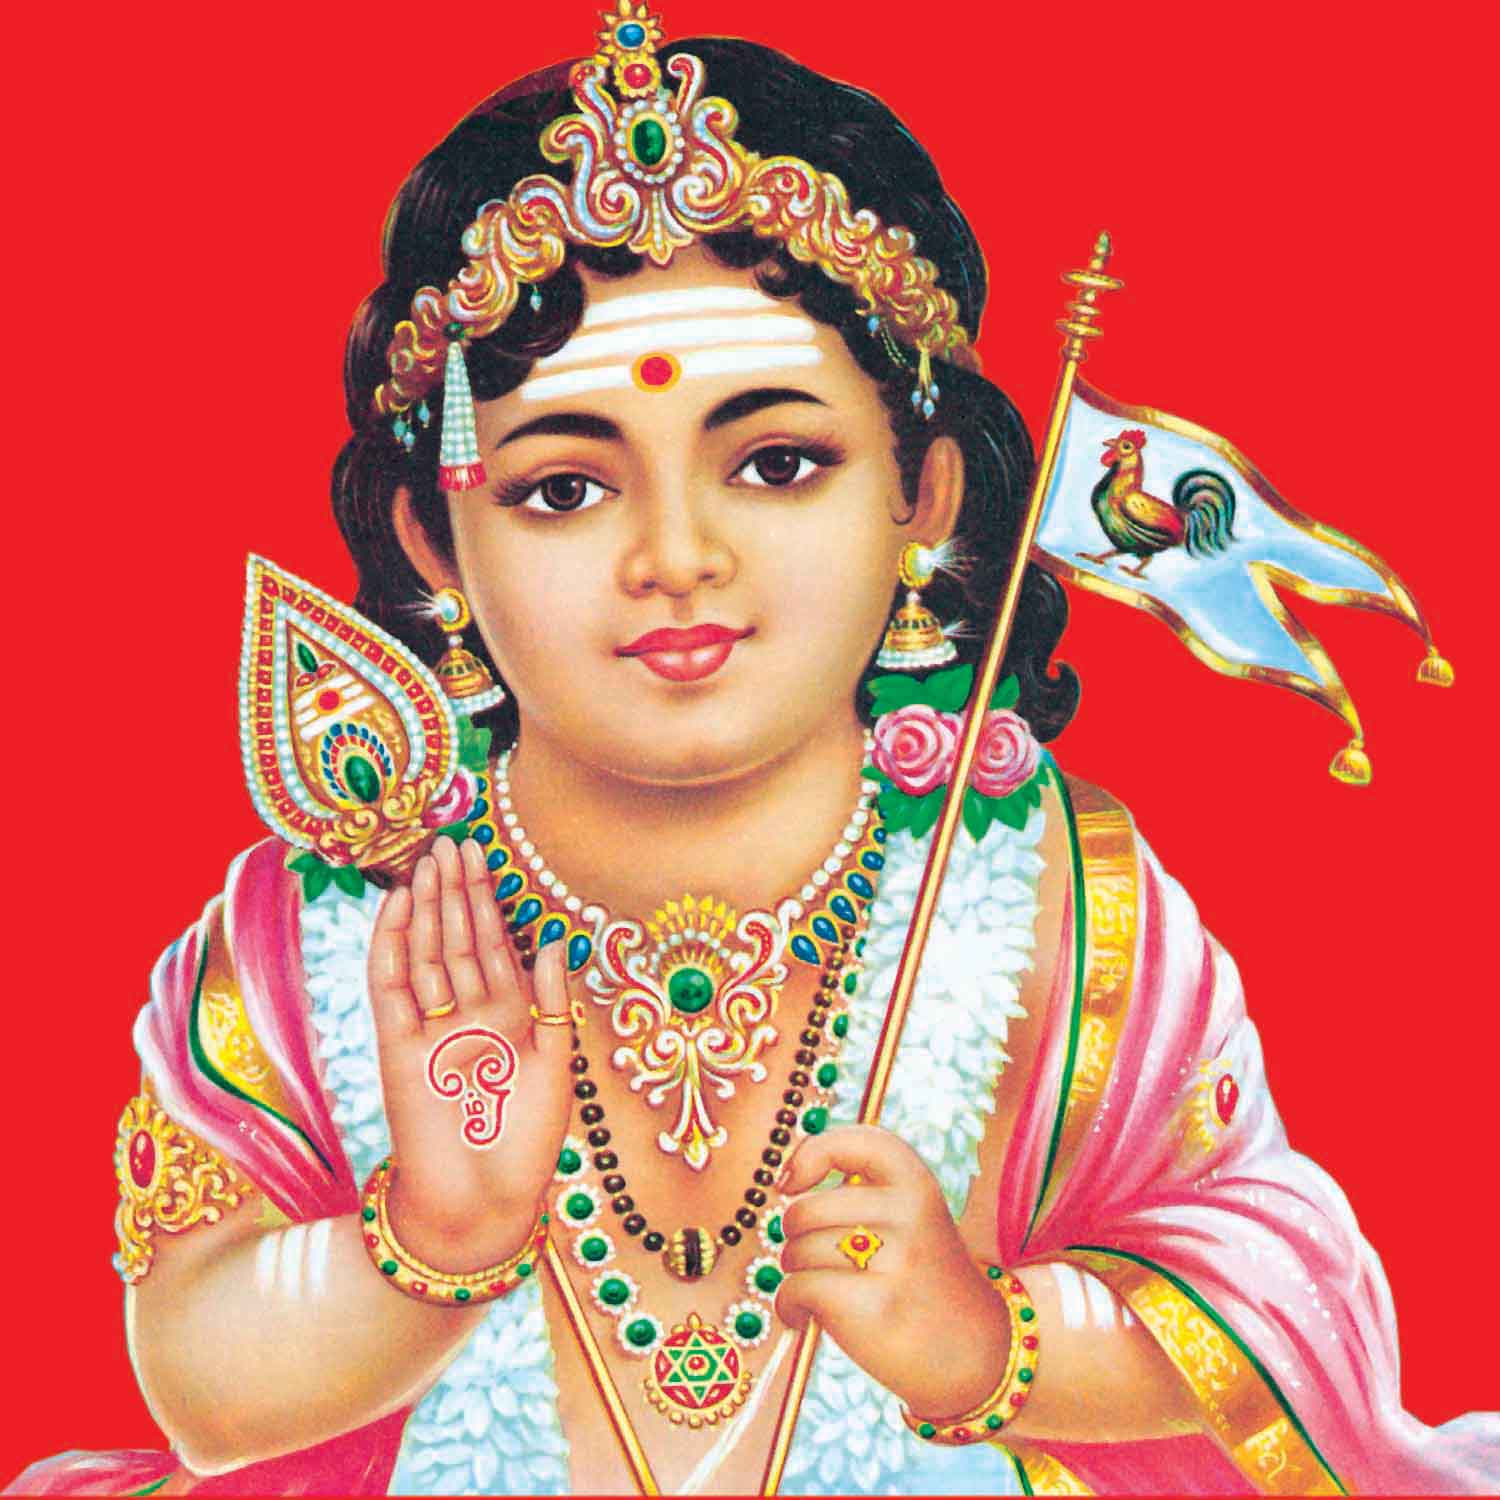 lord murugan stories | photomanu pluspng.com: free photo share, image hosting  software, image sharing script - Lord Murugan PNG